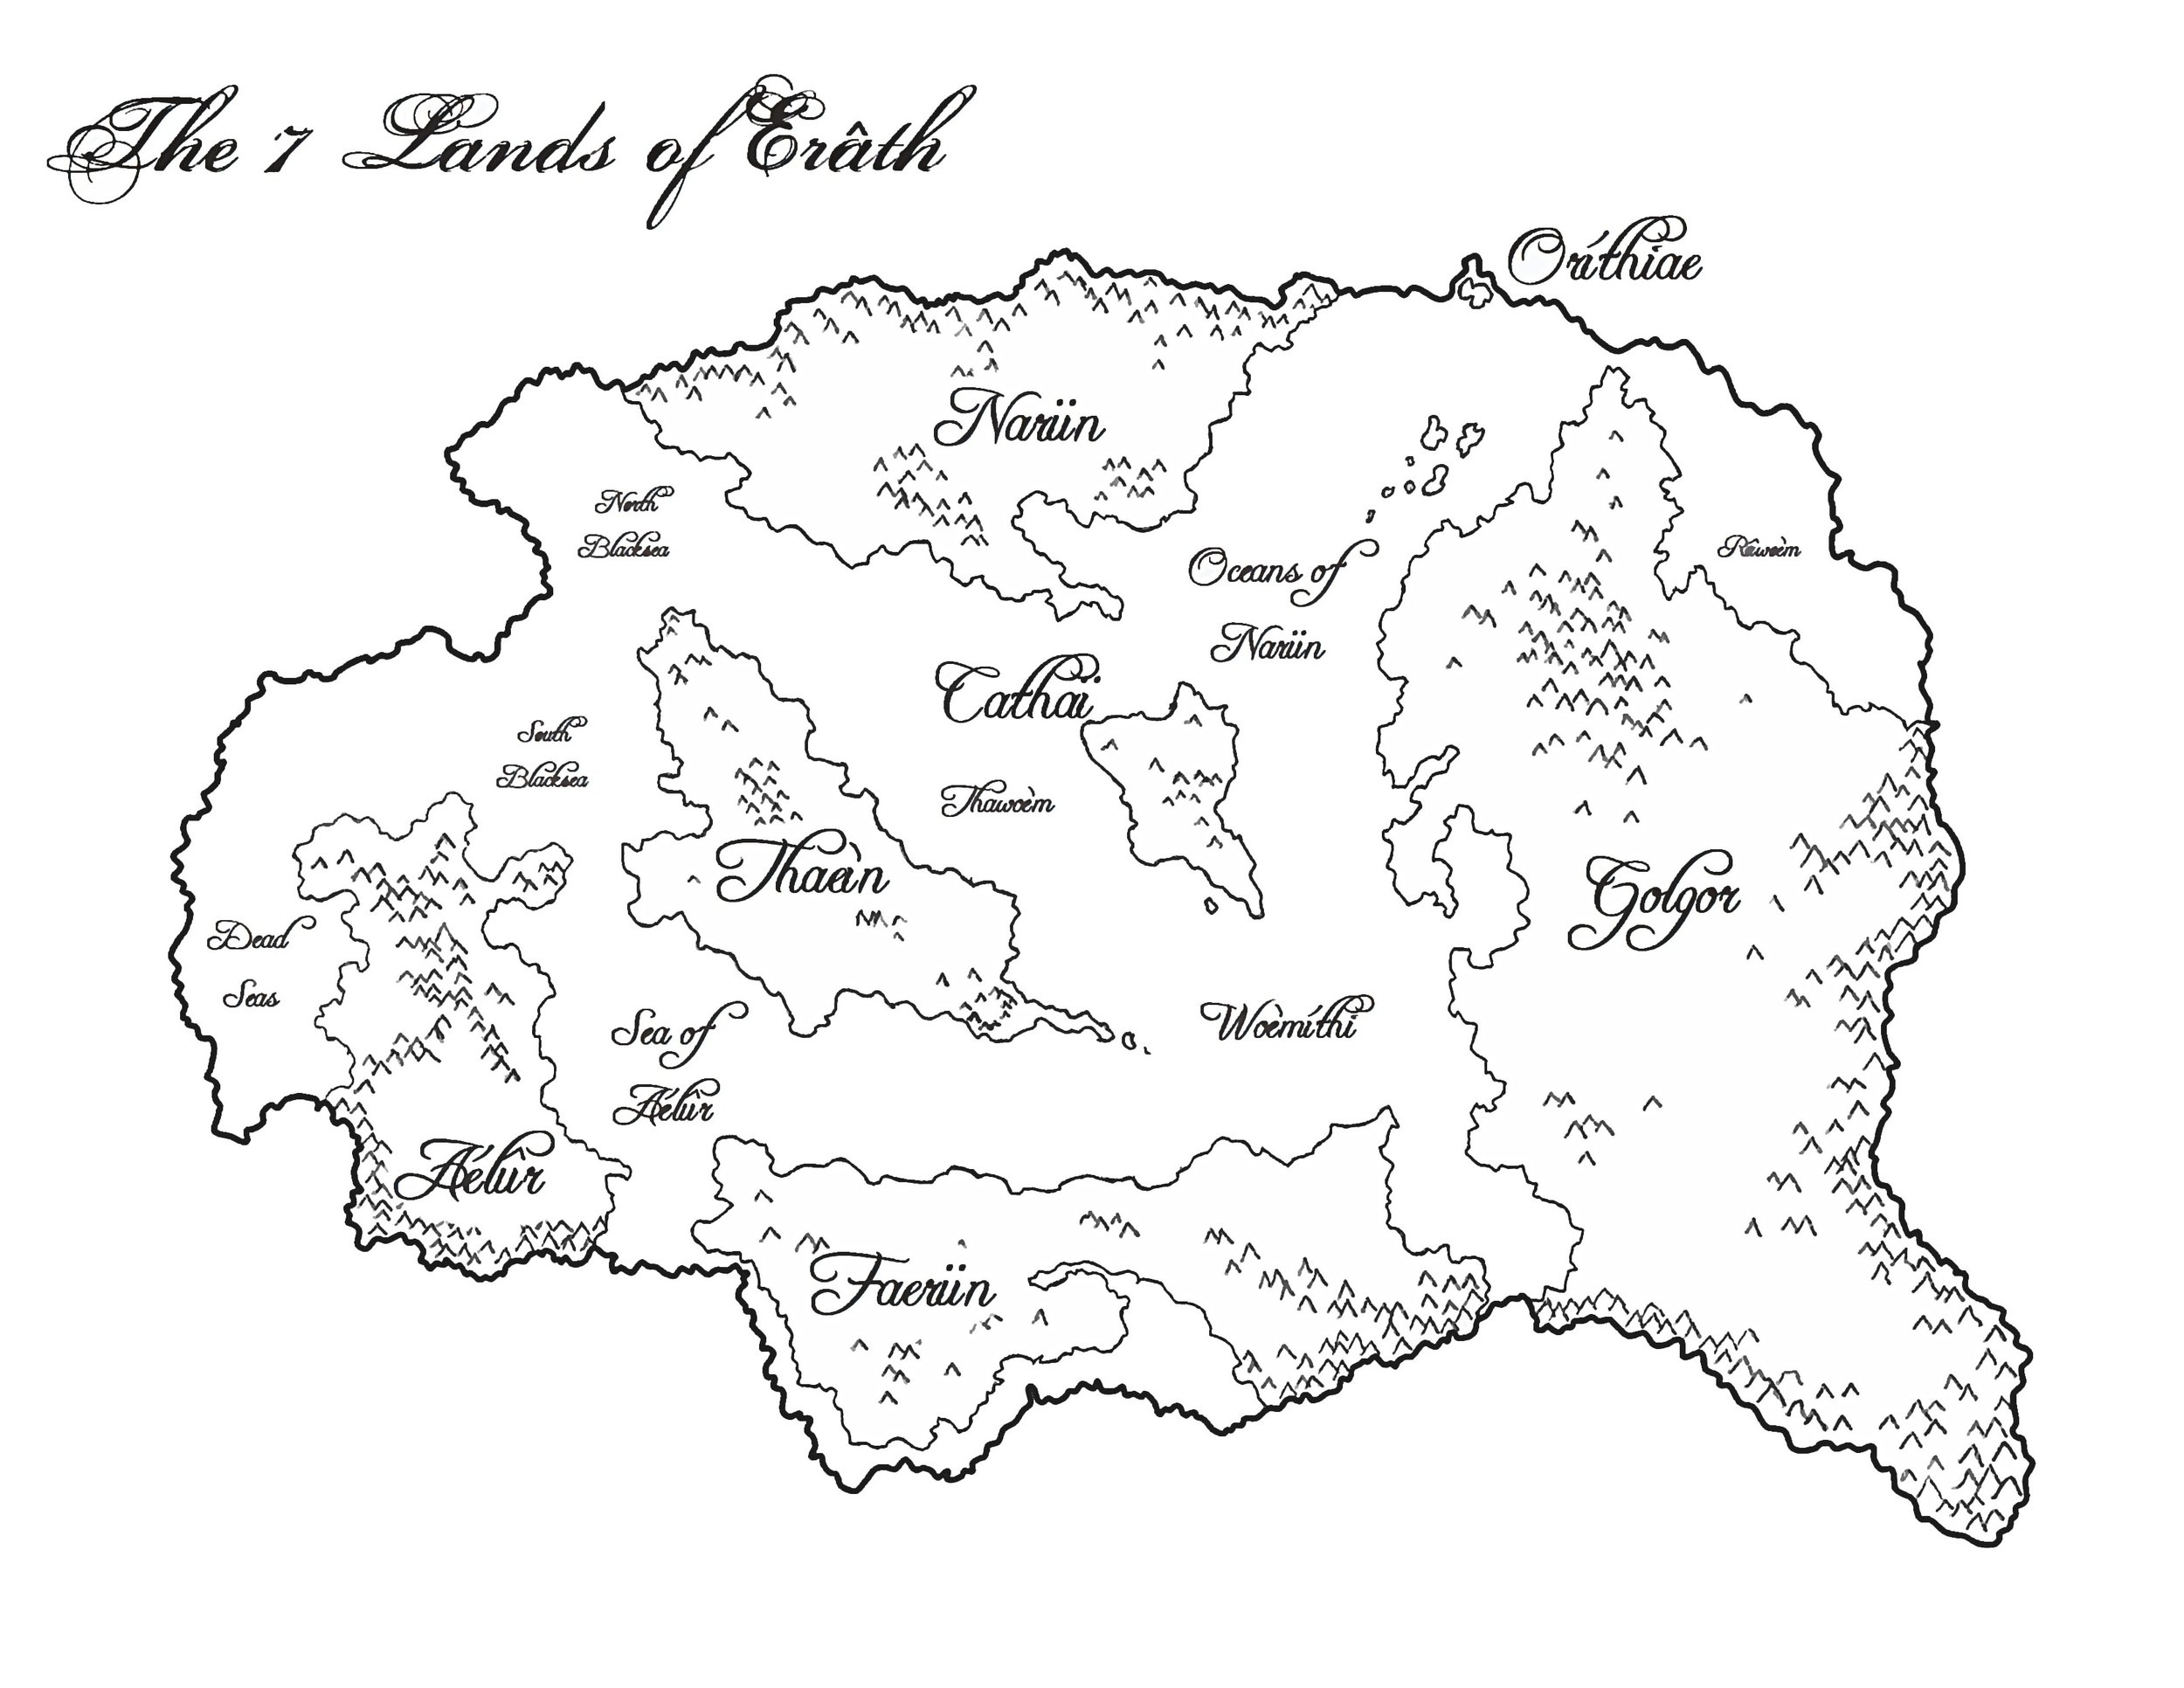 The seven great lands of Erâth, spread from west to east: Aélûr, Thaeìn, Narün, Faerün, Cathaï, Oríthiae and Golgor.